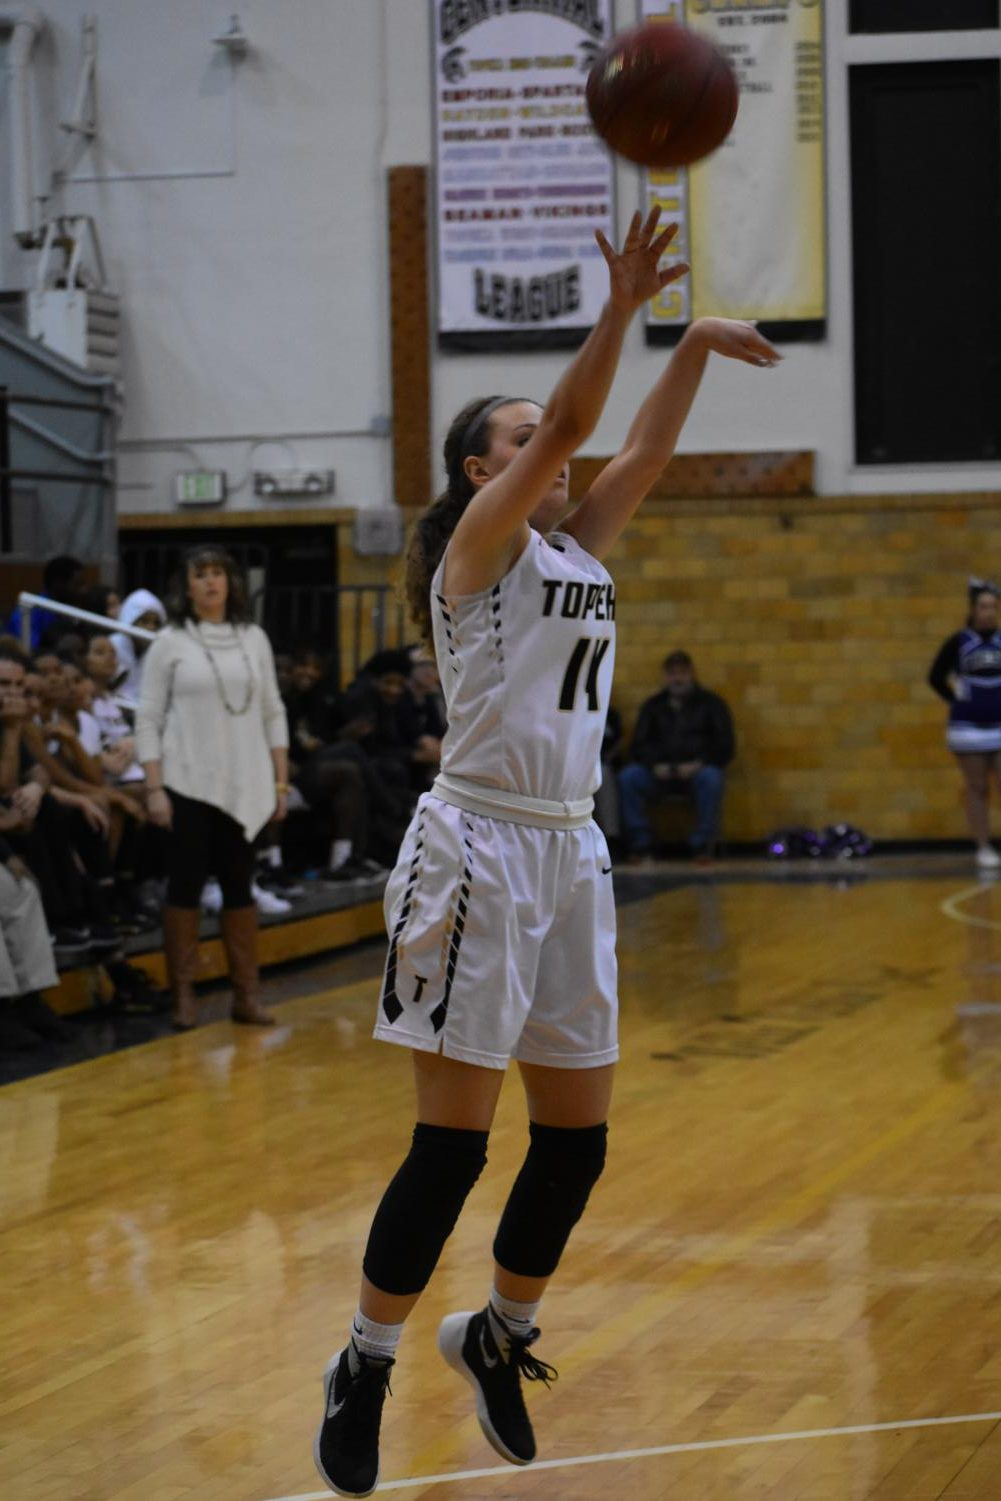 Morgan+Carranza%2C+senior+and+prominent+member+of+the+women%27s+varsity+team%2C+takes+her+shot.++